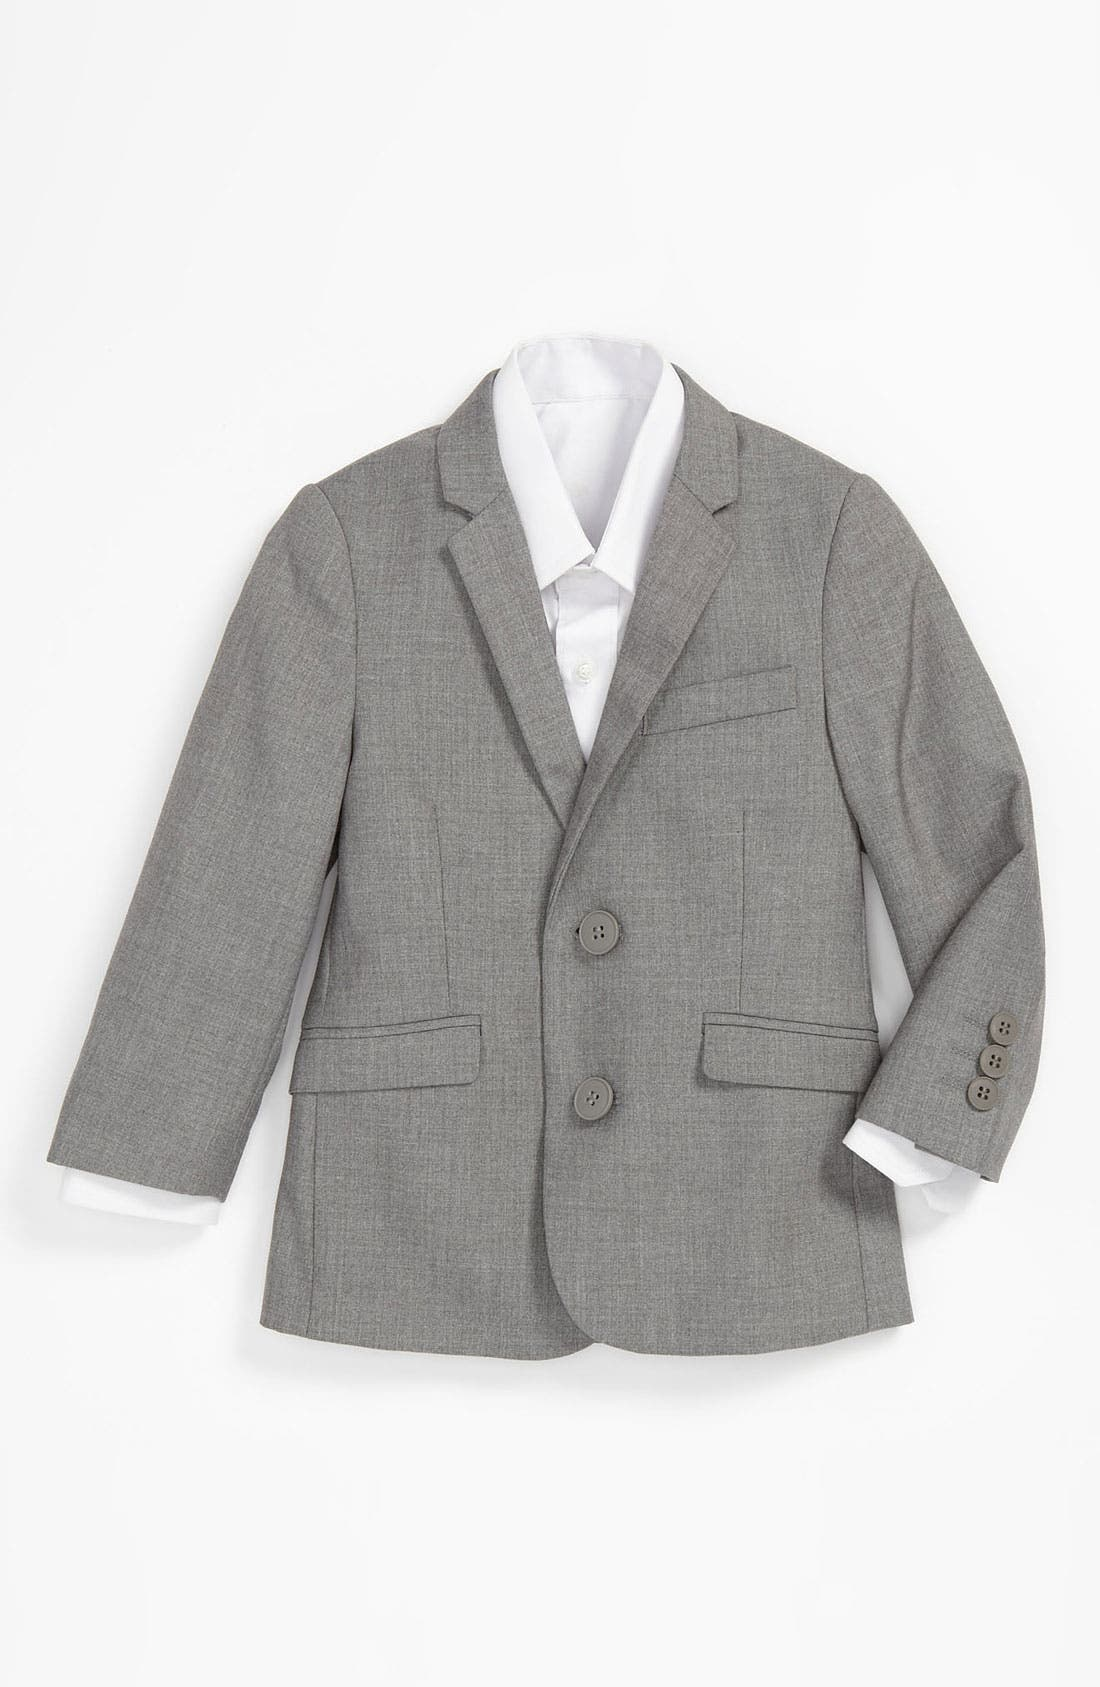 Alternate Image 1 Selected - Appaman Suit Jacket (Toddler)